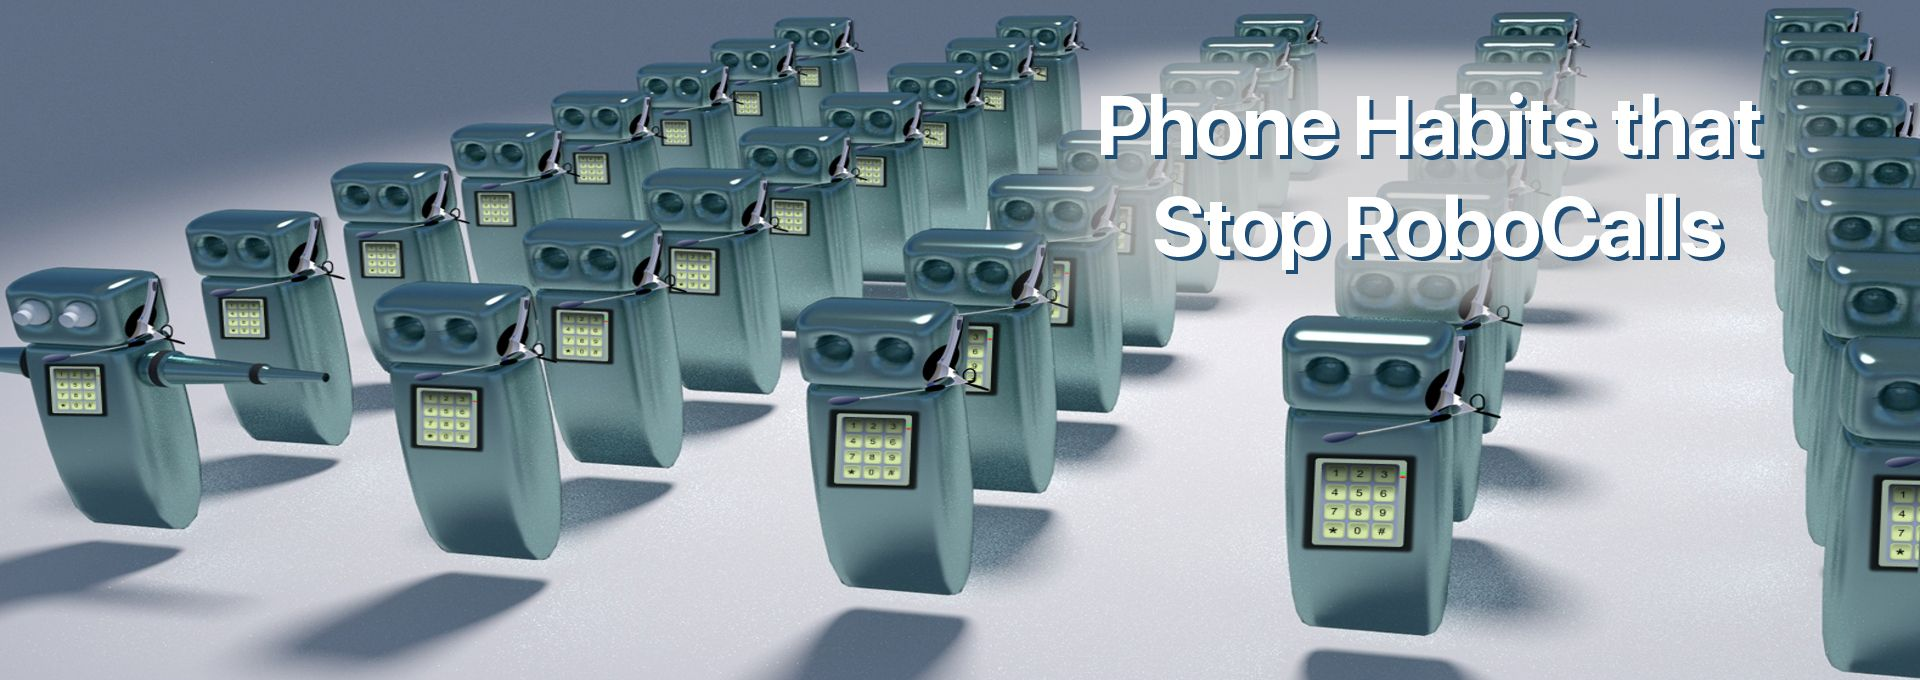 Phone Habits that Stop Robocalls Banner